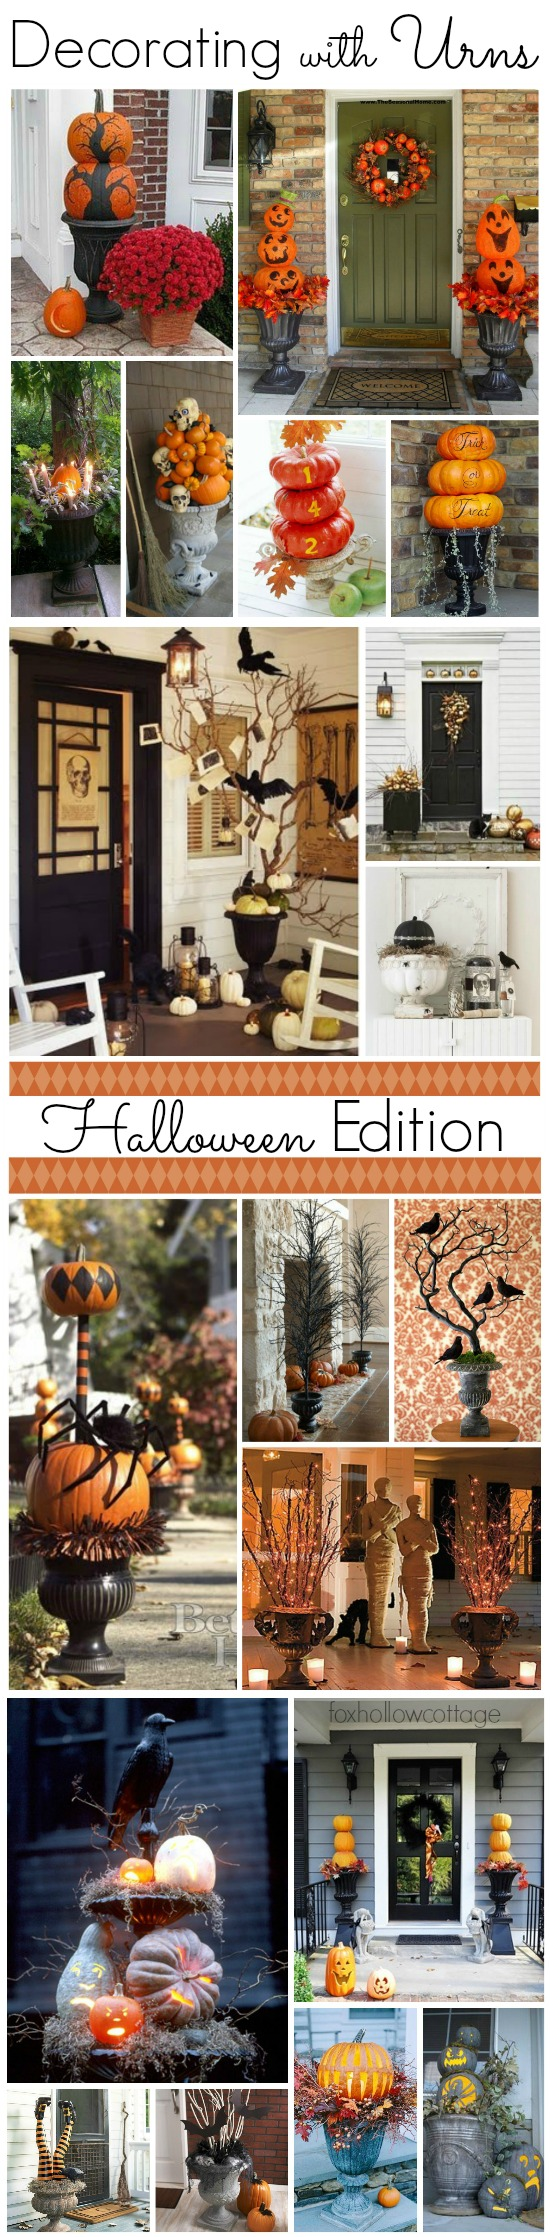 decorating with urns the halloween edition   fox hollow